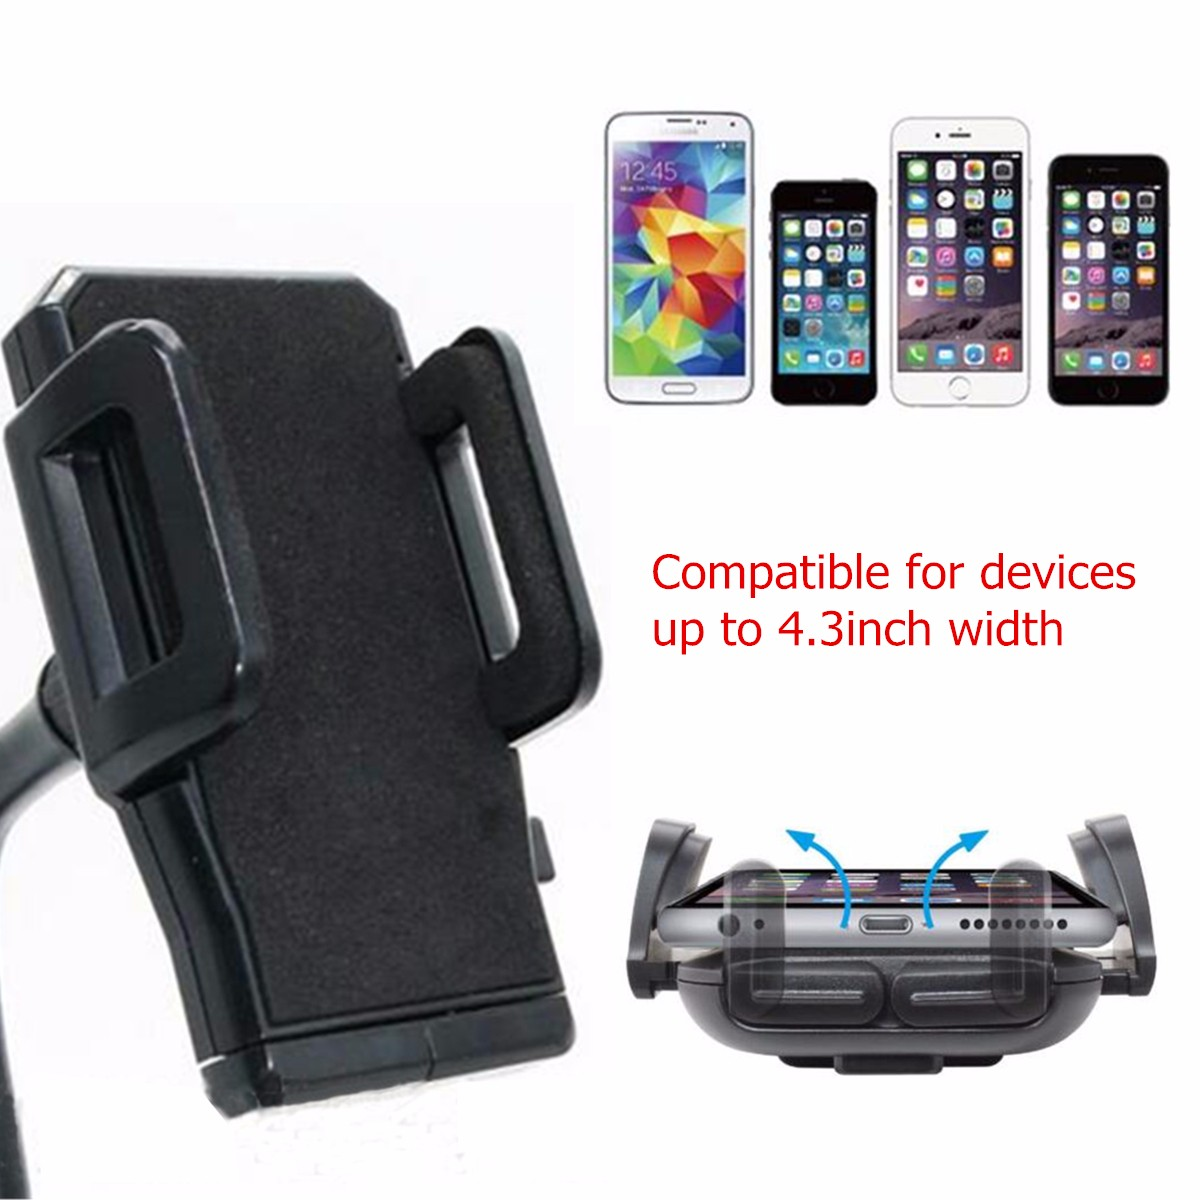 Universal Cup Holder Cradle Car Mount Adjustable for iPhone 6 Samsung MP4 GPS